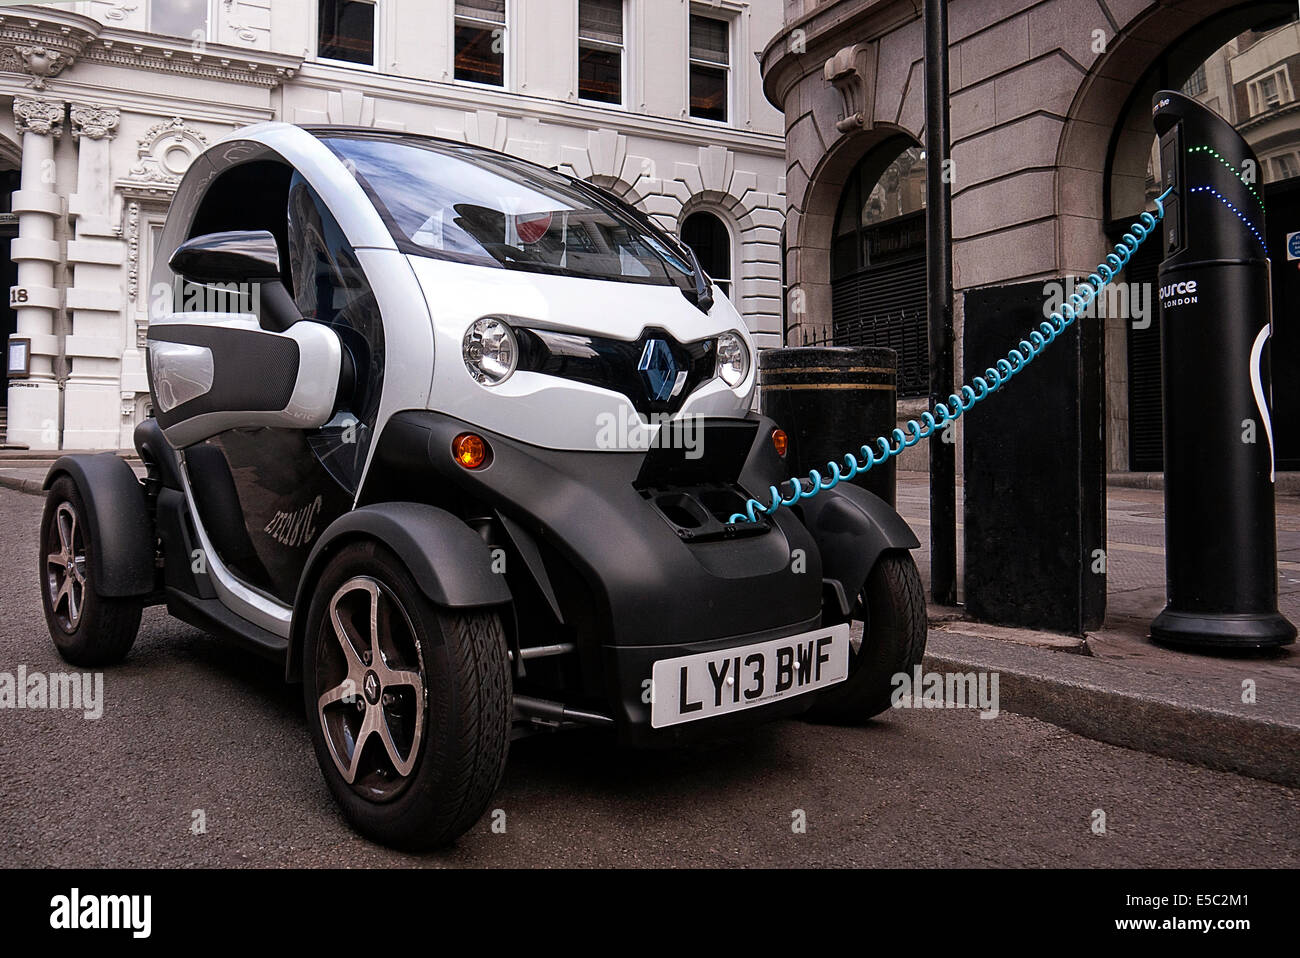 renault twizy electric car on charge in covent garden london stock photo royalty free image. Black Bedroom Furniture Sets. Home Design Ideas